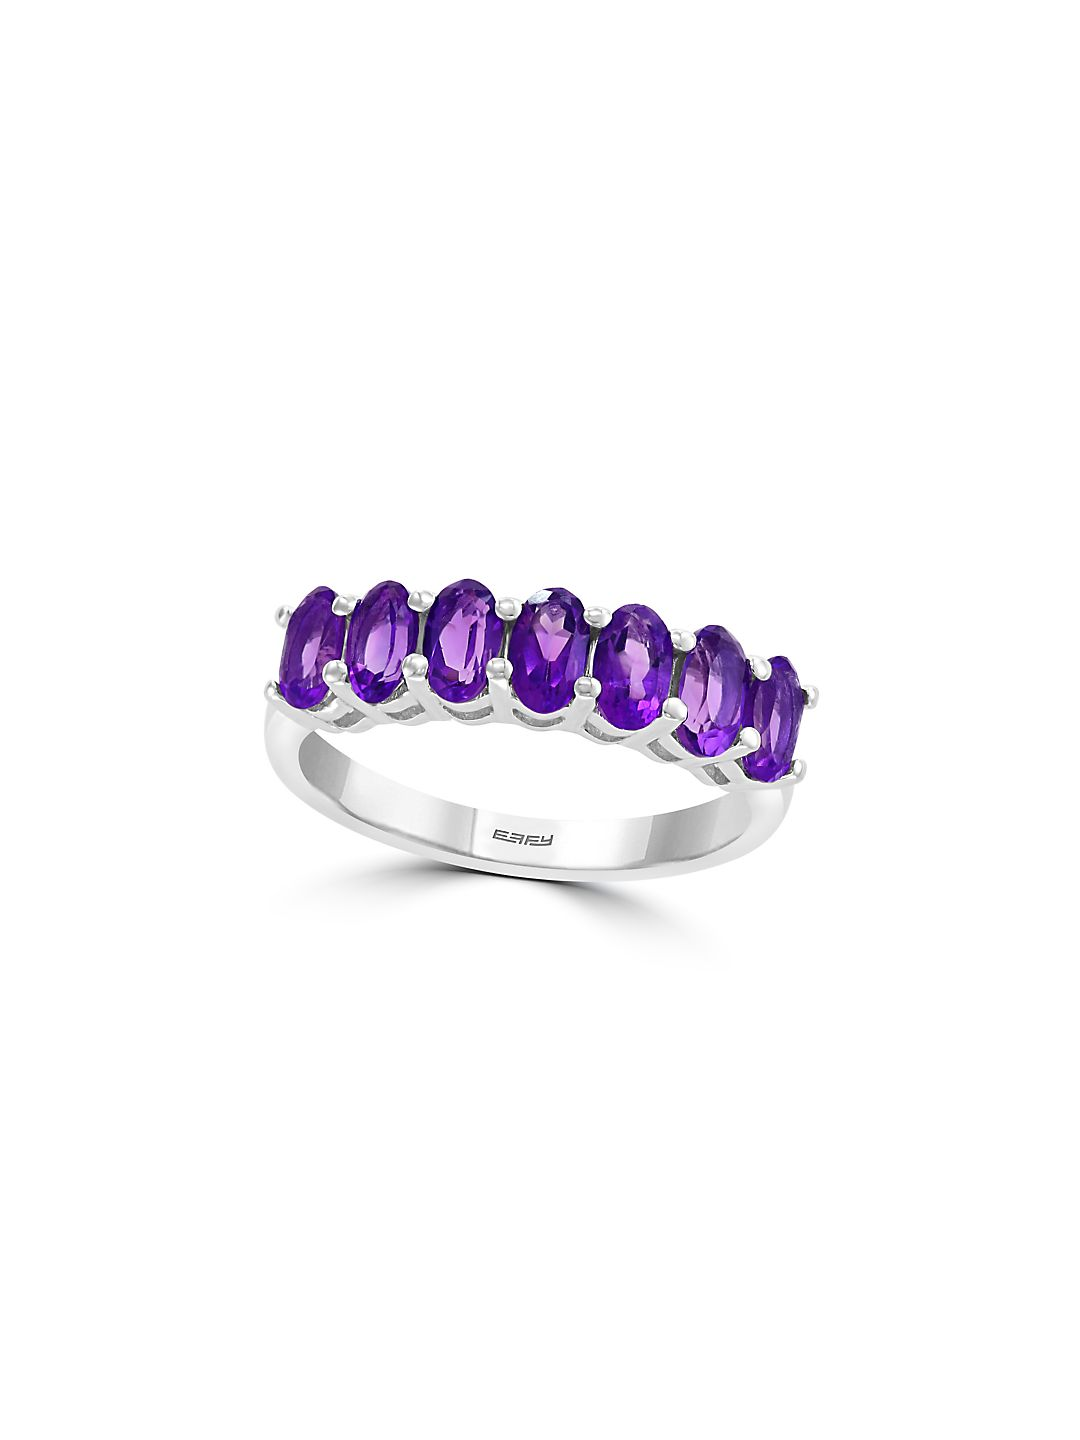 Sterling Silver & Amethyst Band Ring